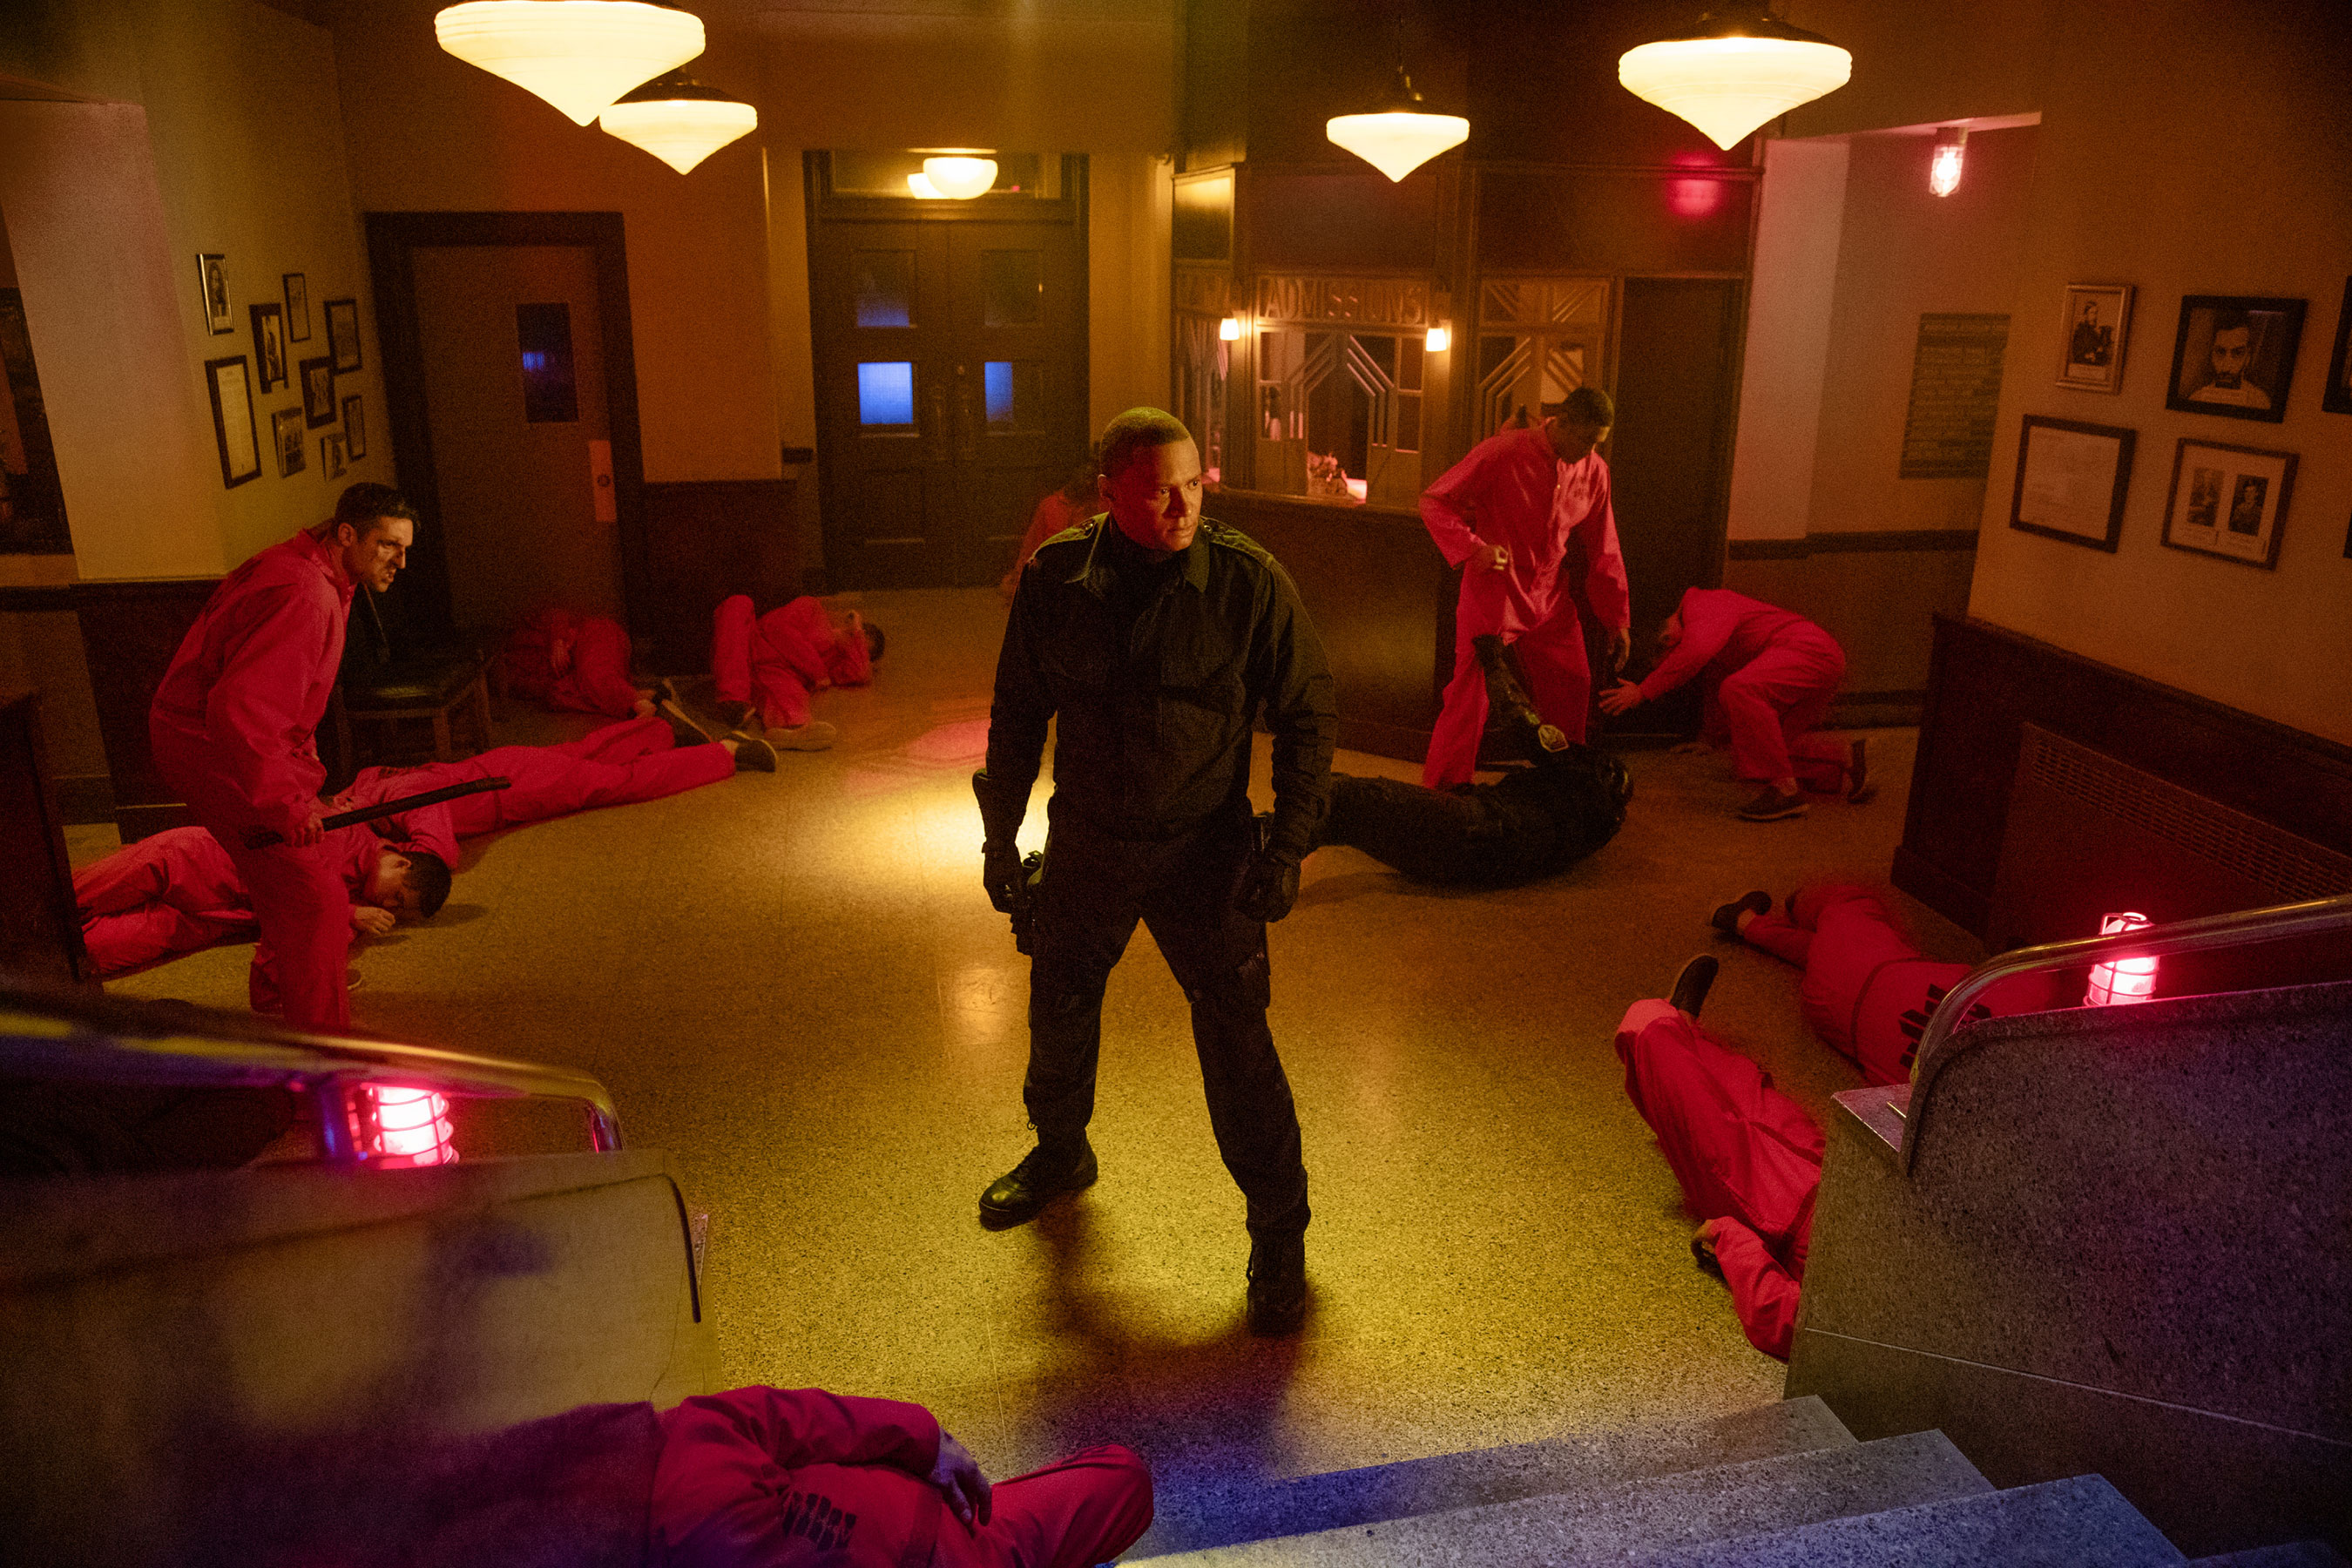 Fotos promocionais da hora de Arrow no crossover Elsewords